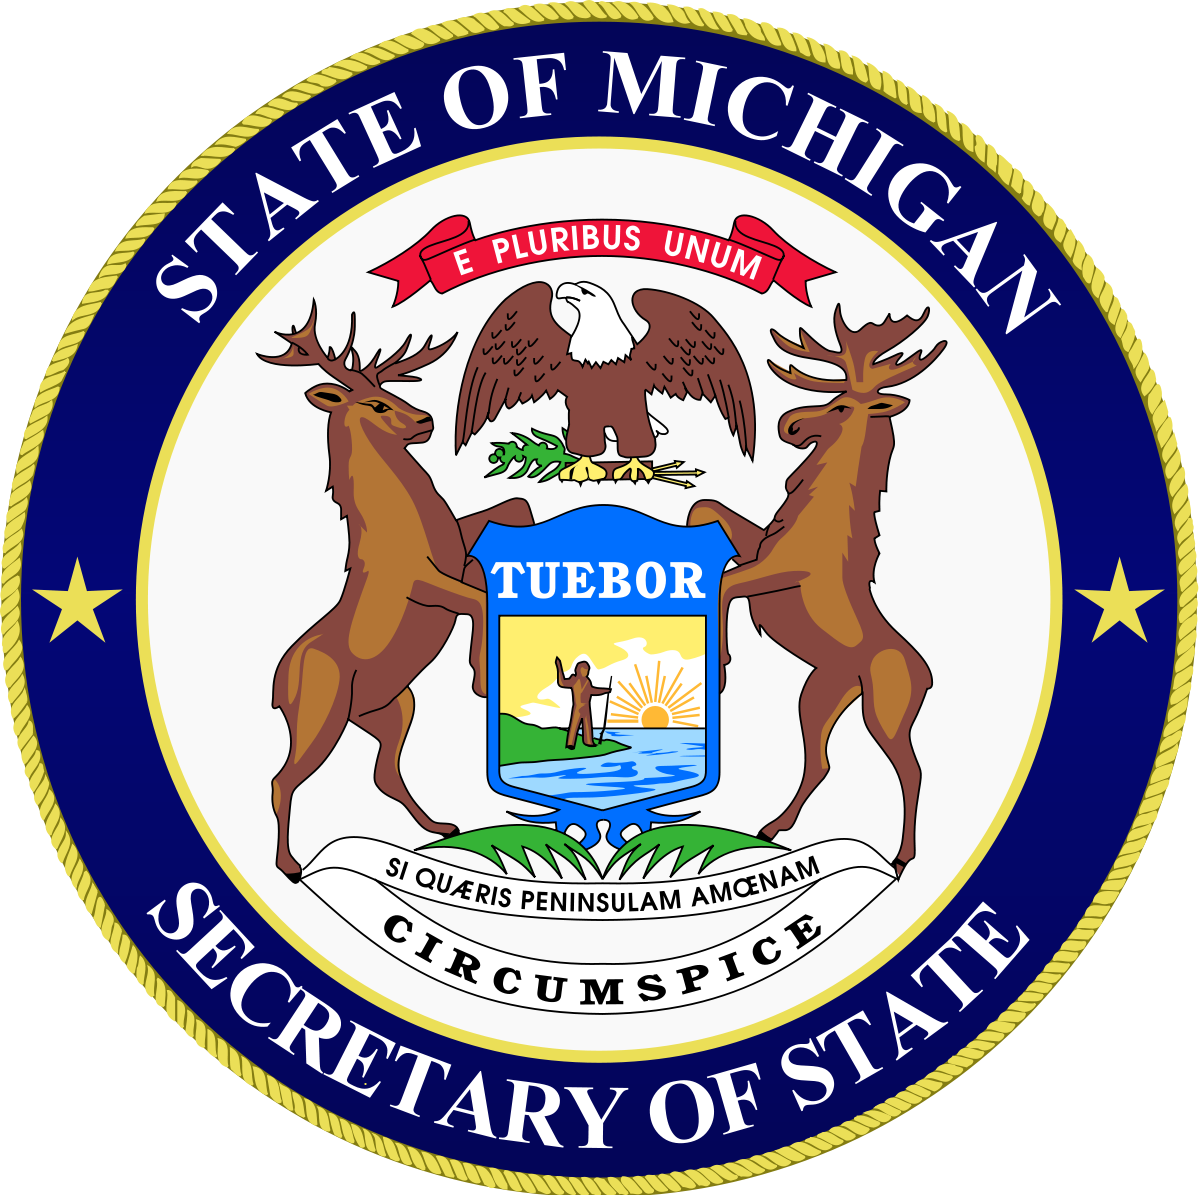 Secretary Of State Offices Closed On Monday